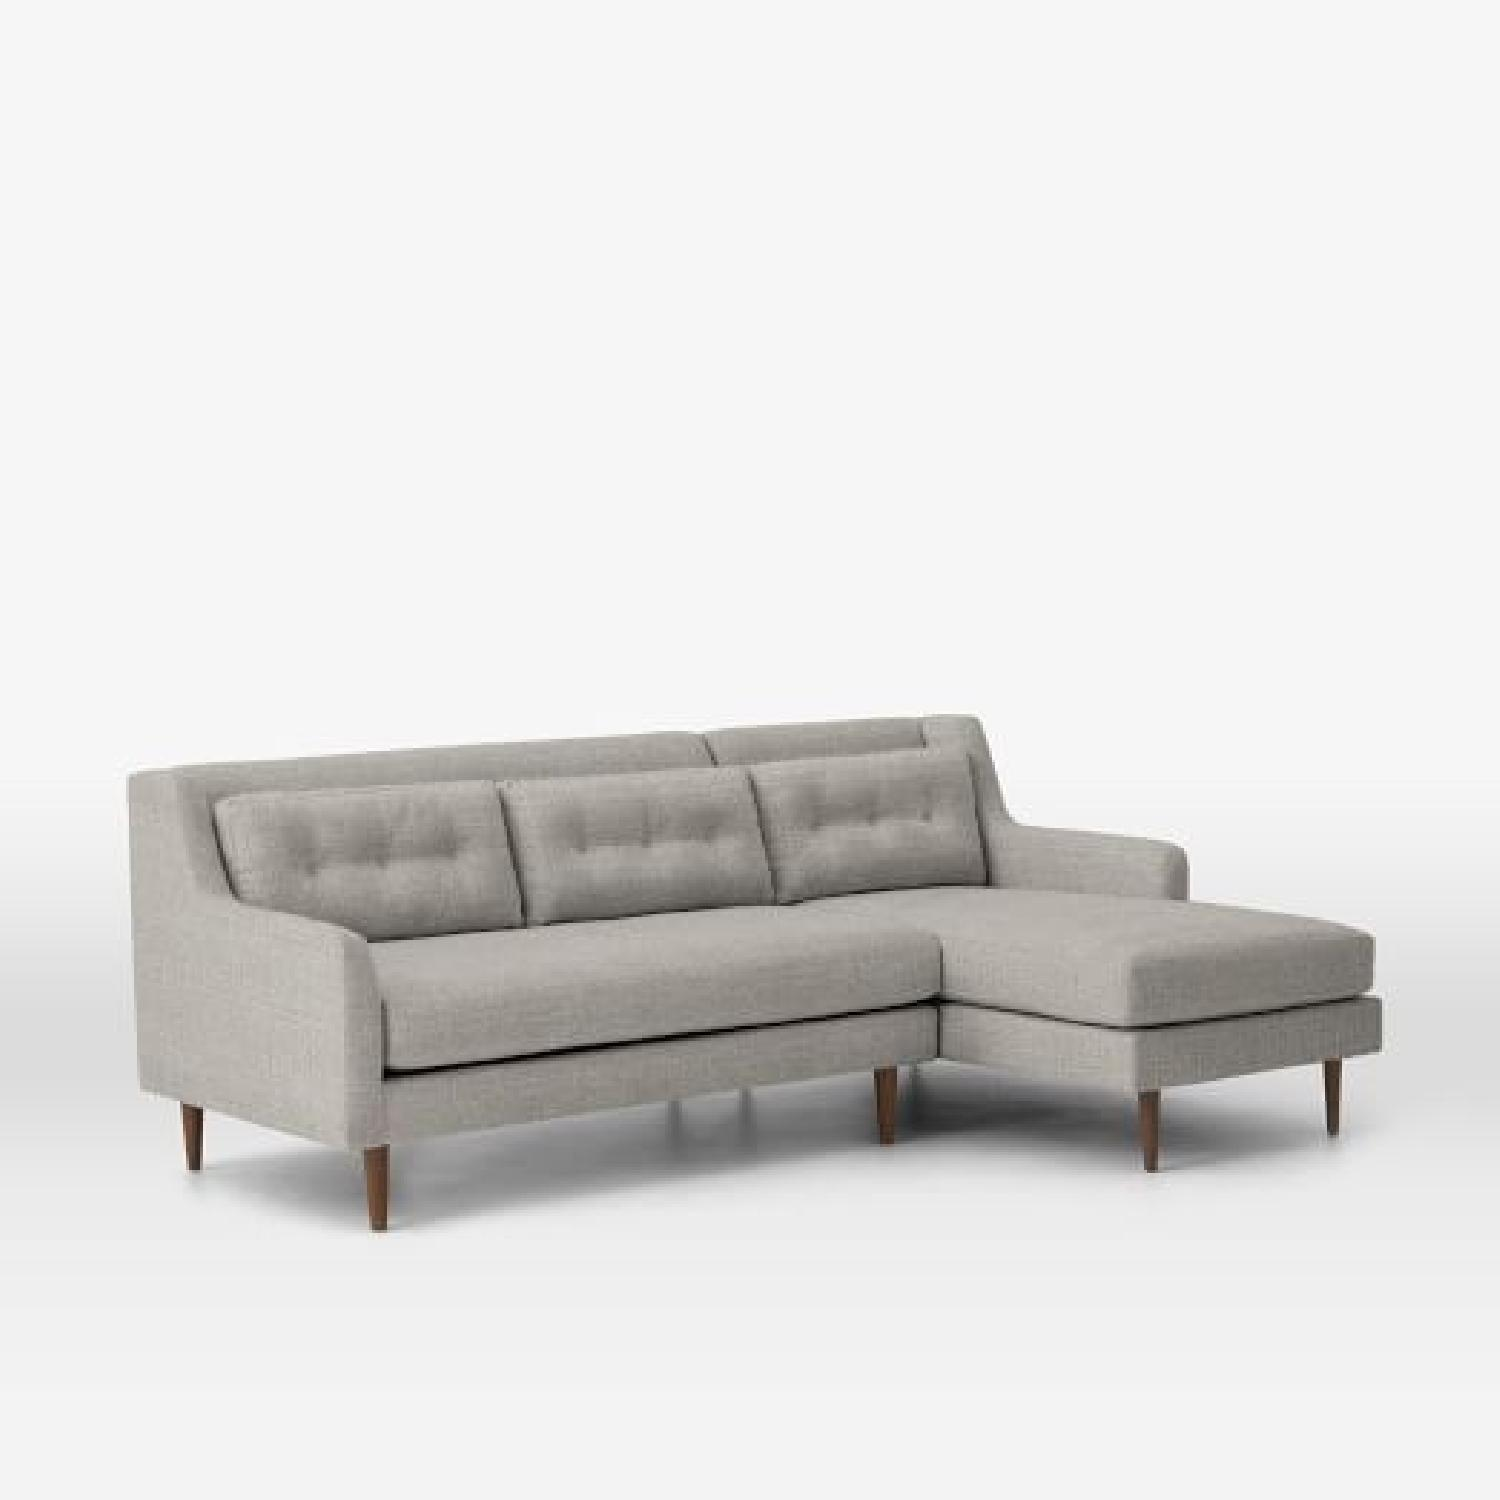 West Elm Crosby Mid-Century 2-Piece Chaise Sectional Sofa